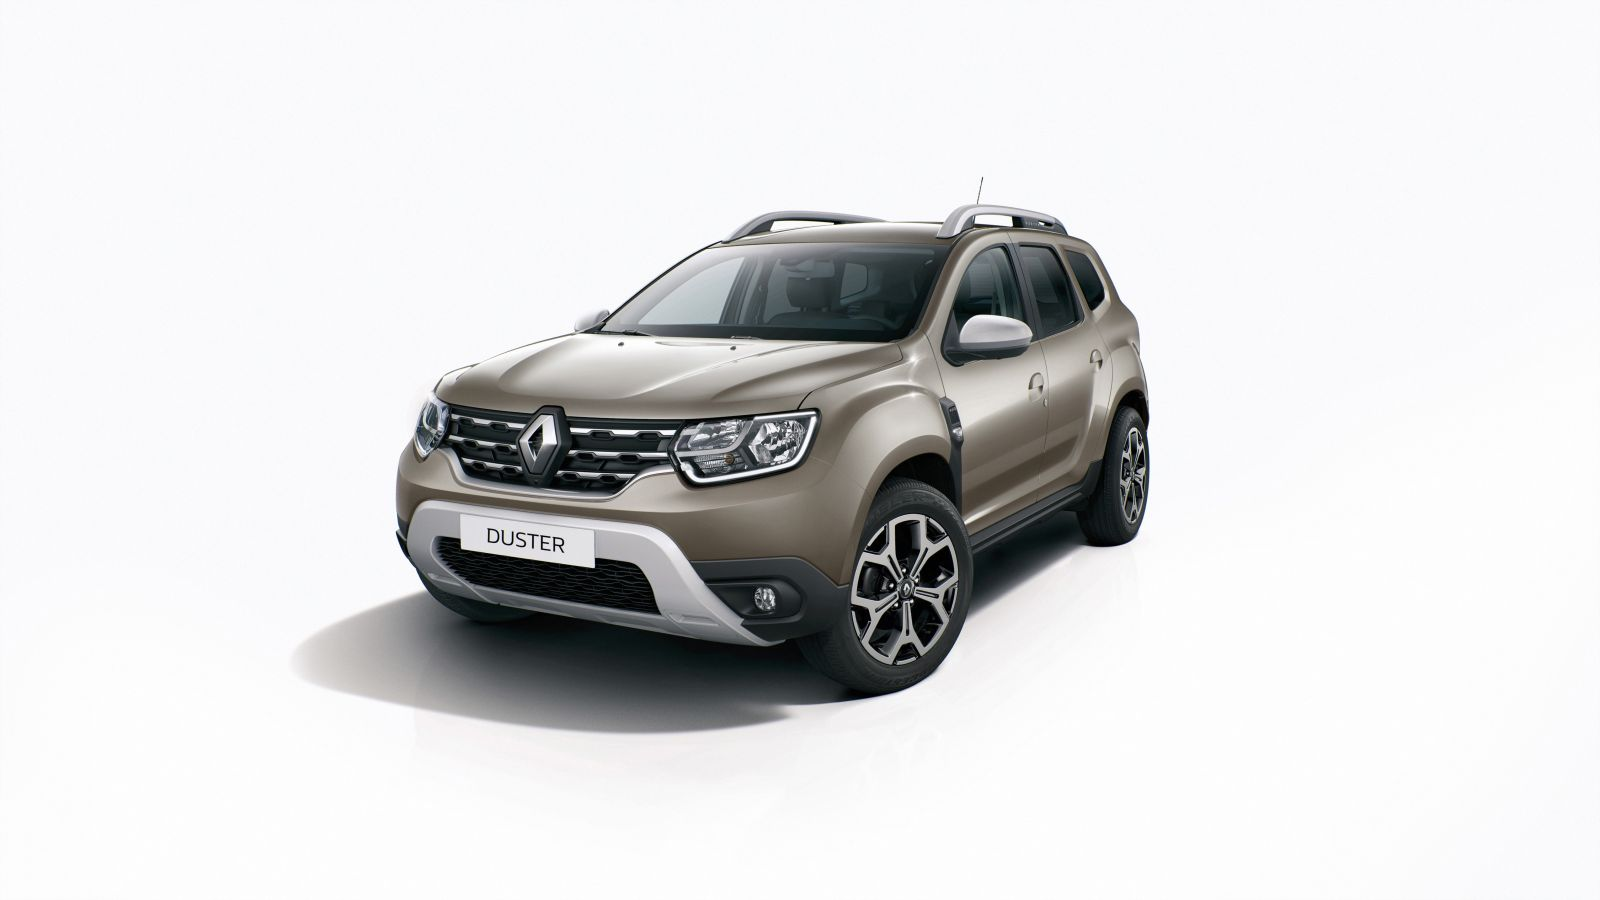 New-2018-Renault-Duster-7